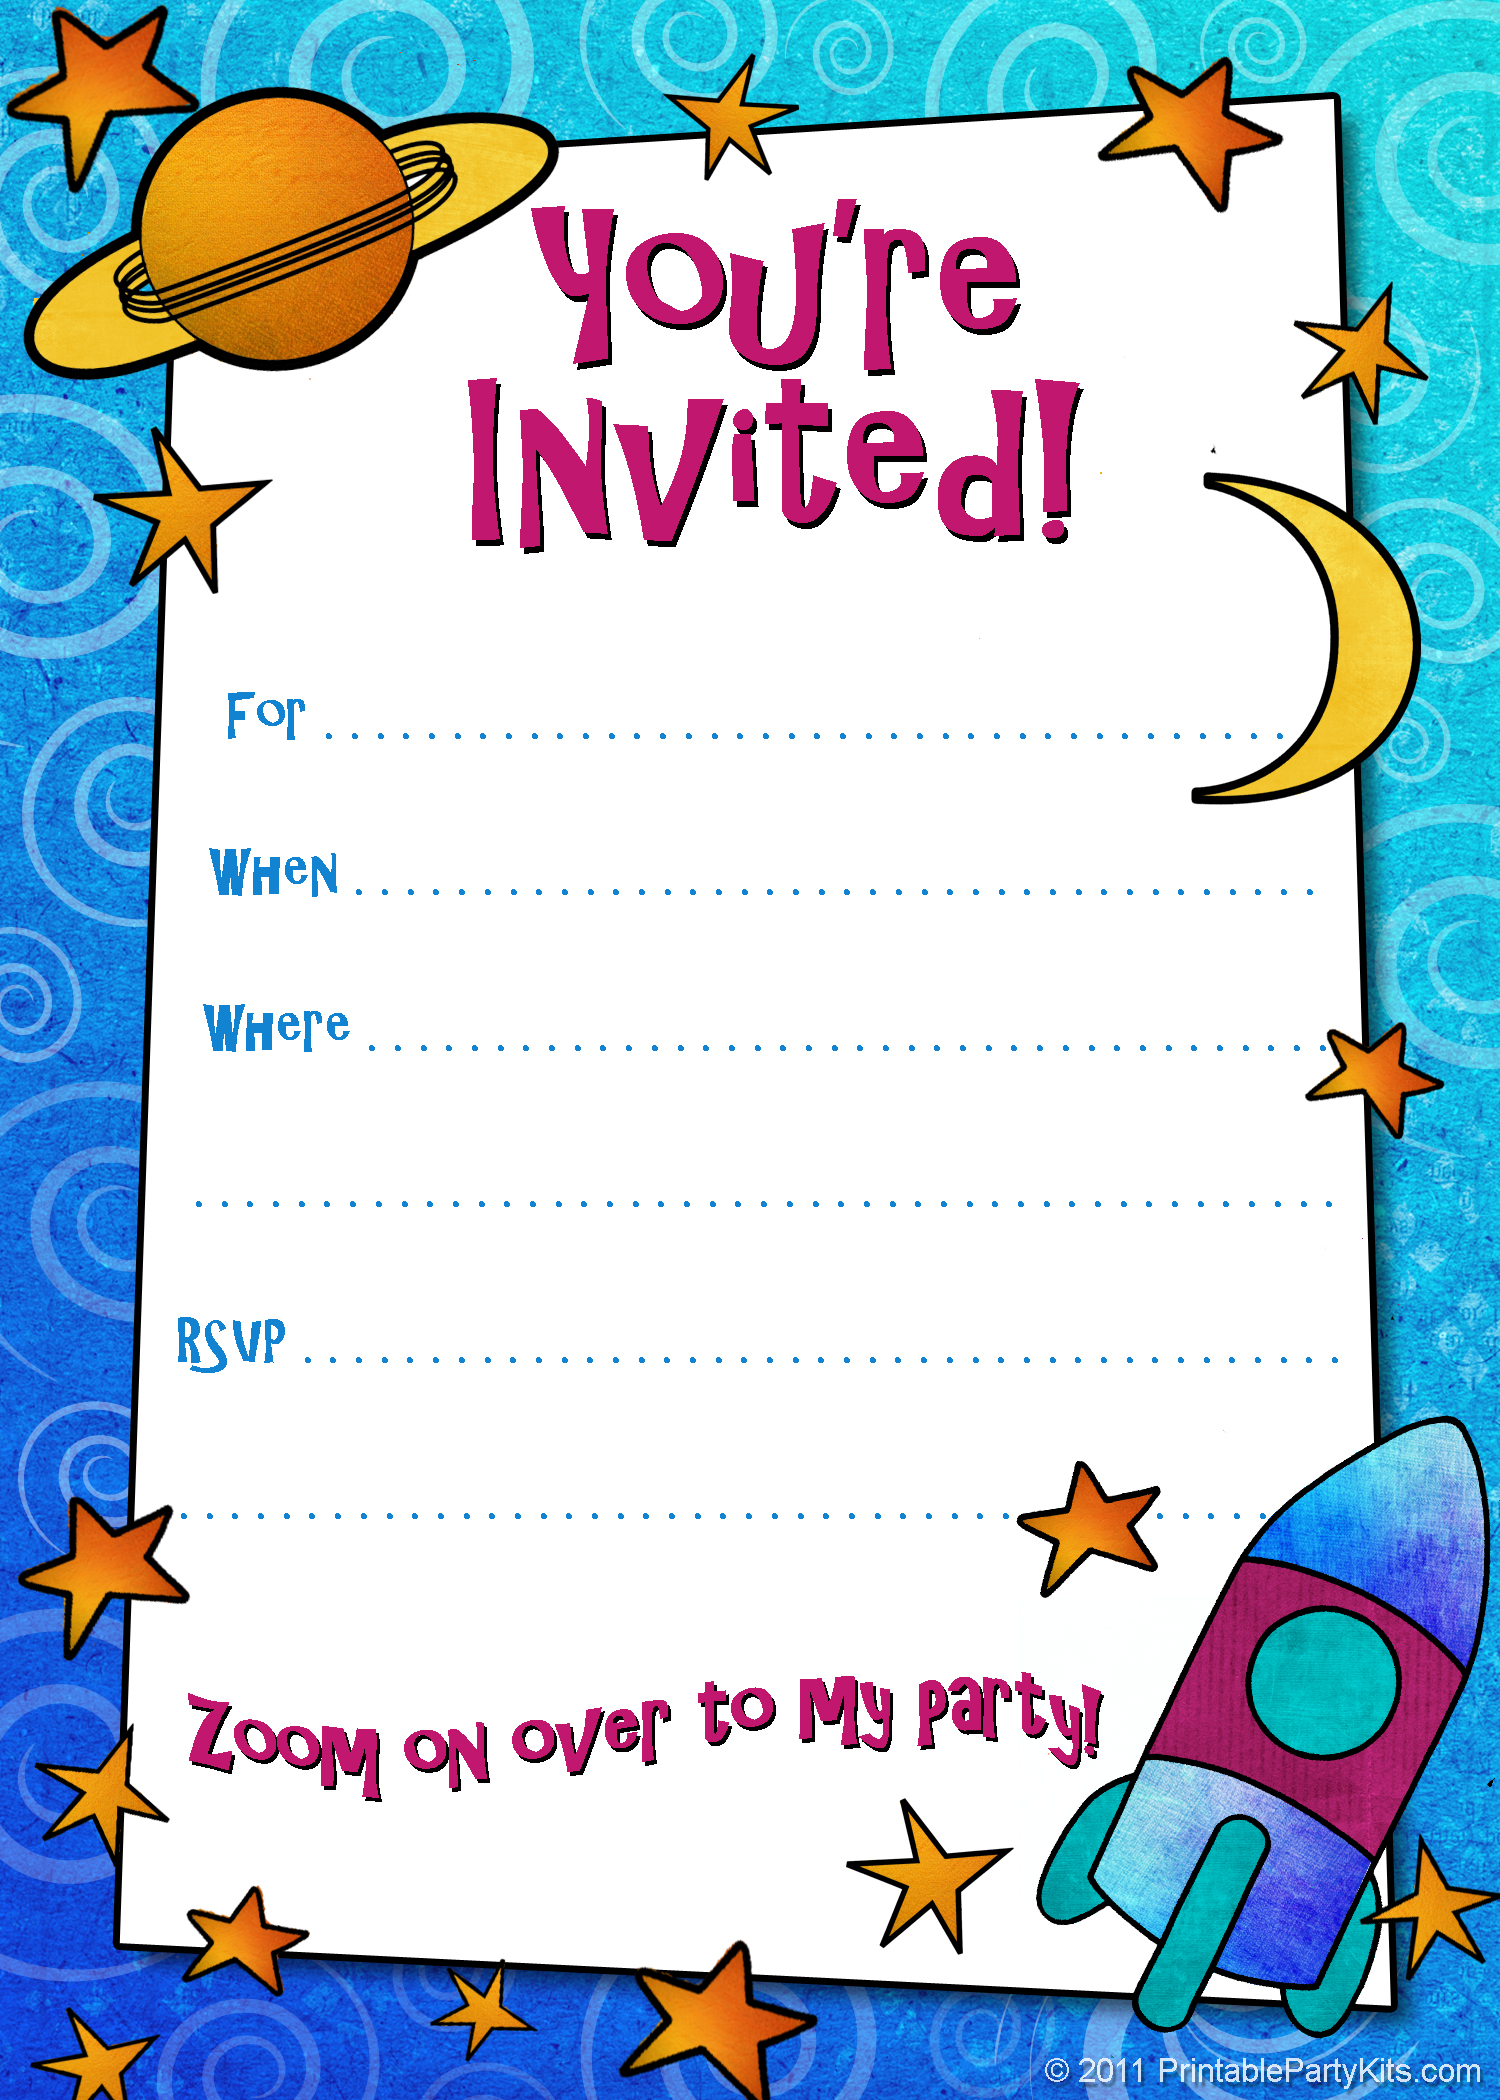 birthday party invitation card template free ; f26d38df07f5abe2585469543af7c6a9